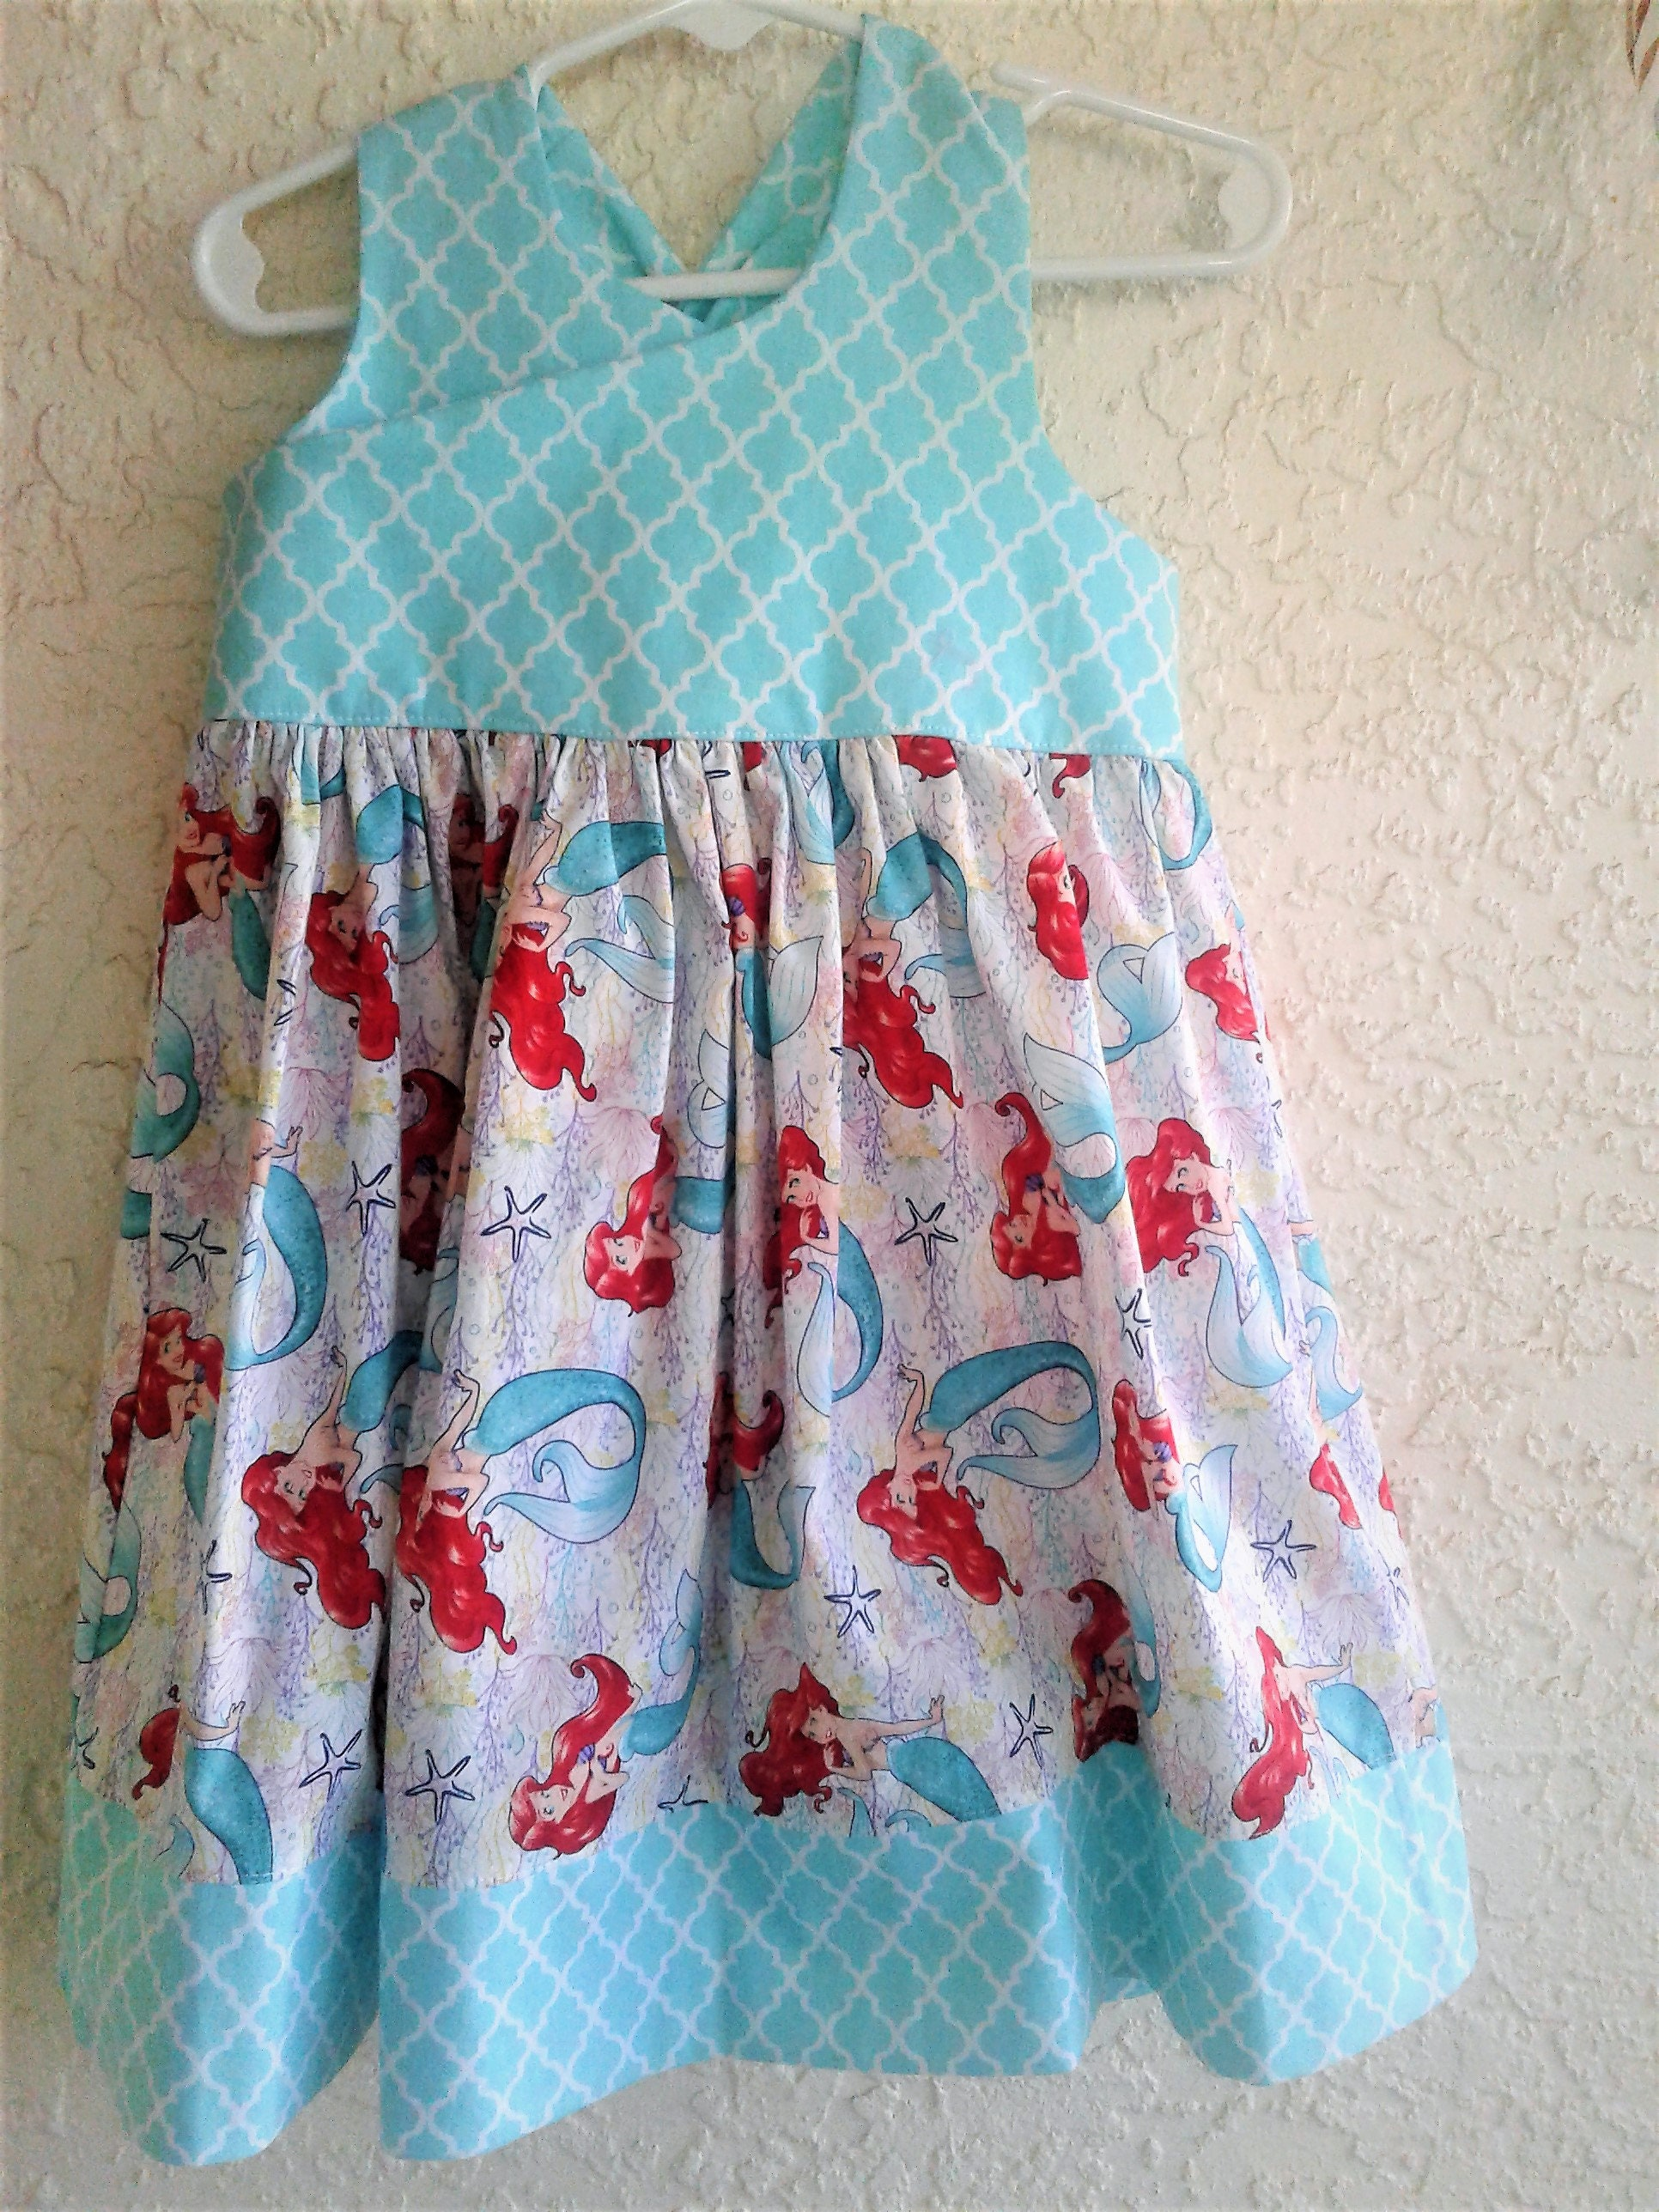 Ariel Little Mermaid Dress Disney Princess dress Baby Princess